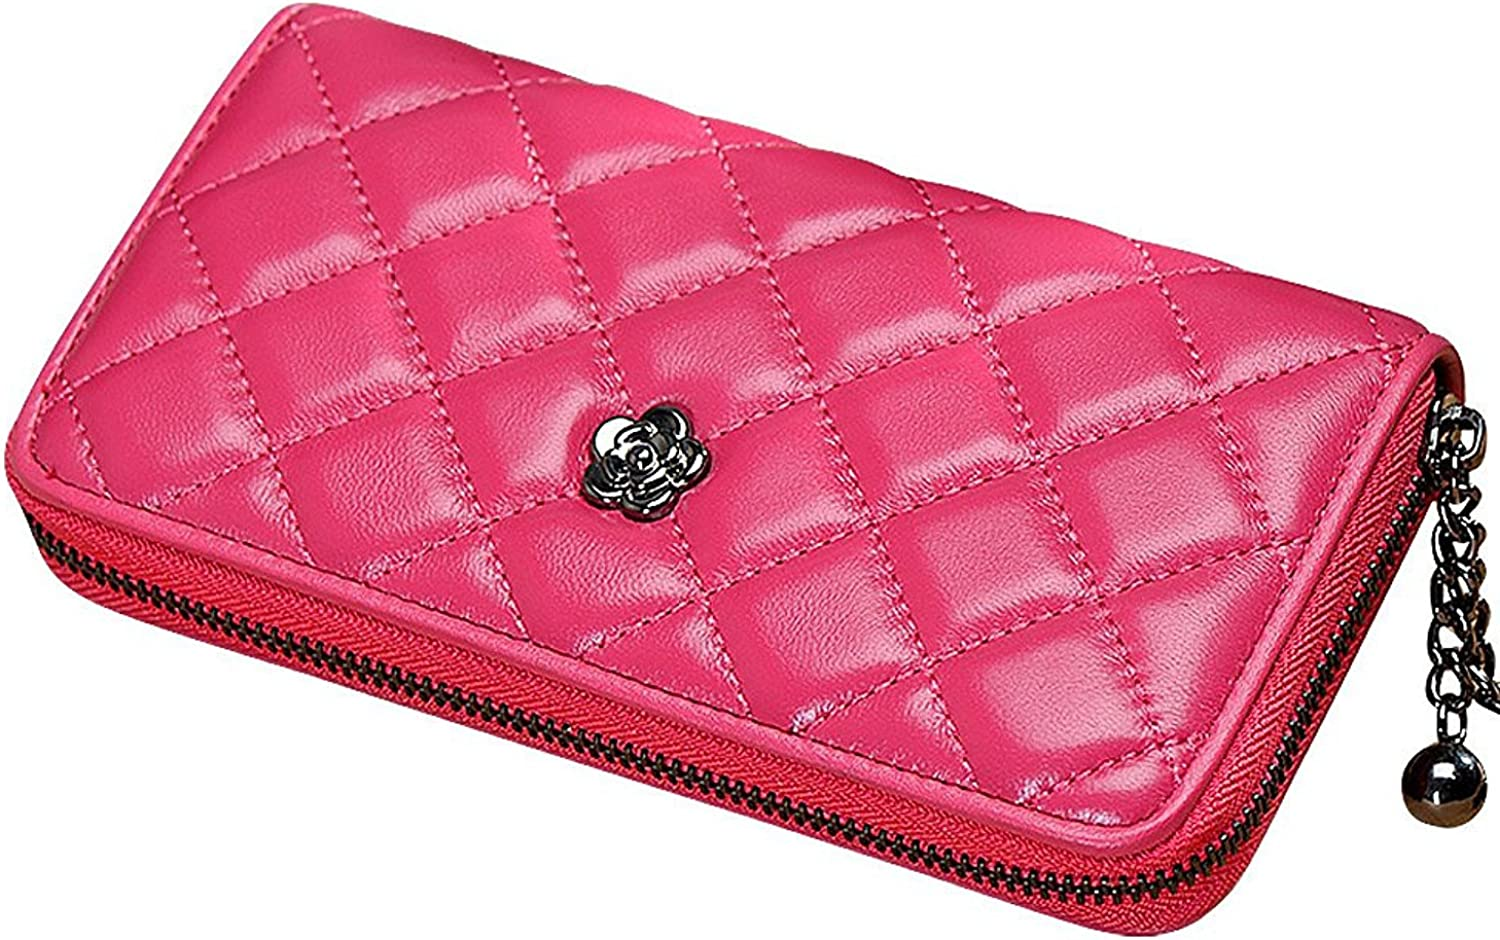 Cheryl Bull Fashion Women Elegant Soft Genuine Leather Long Wallet Purse